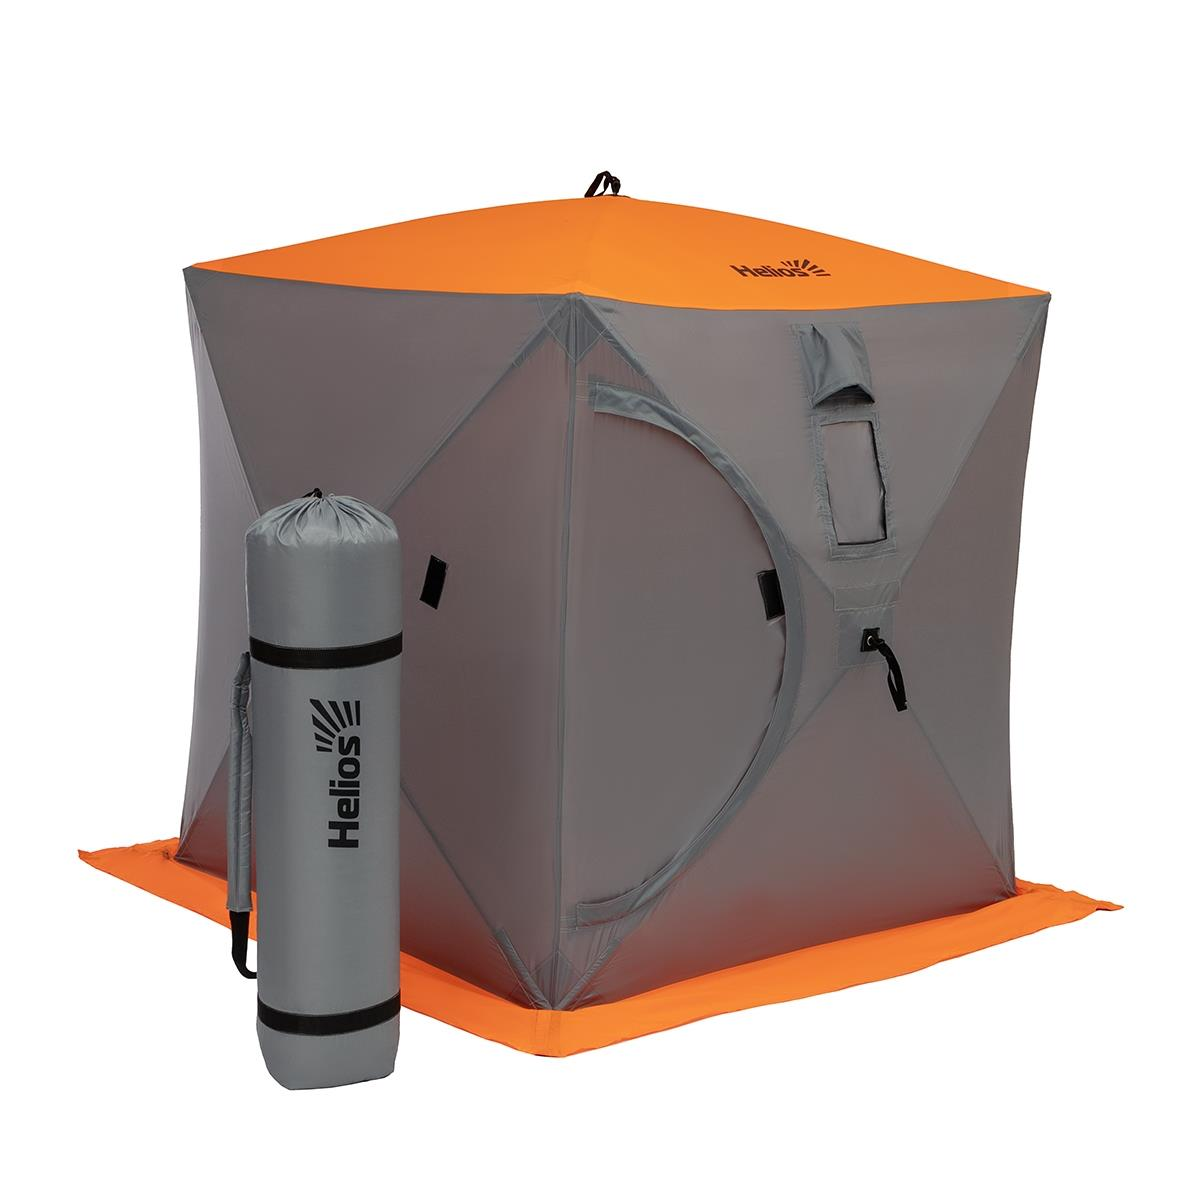 Tent Winter Cube 2th Spot For Cold Ice Fishing Winter 1,5 X1, 5 Orange Lumi/gray Helios (HS-ISC-150O